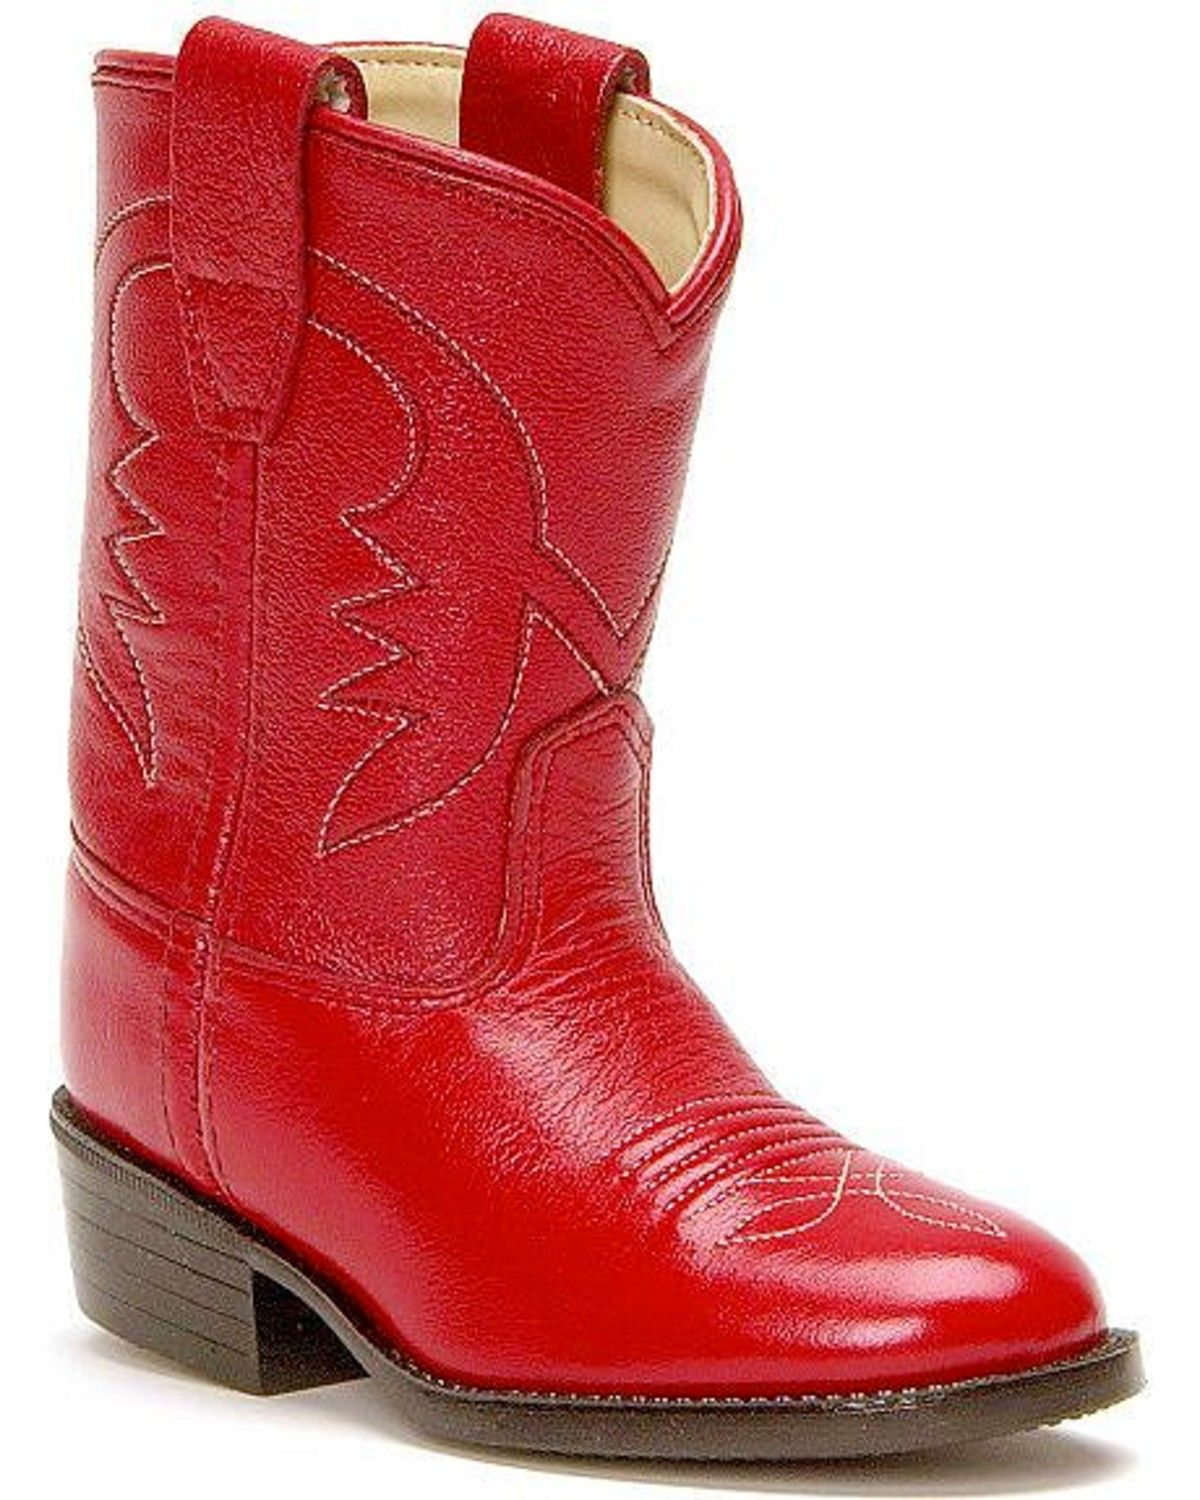 Old West Toddler Girls' Cowboy Boots